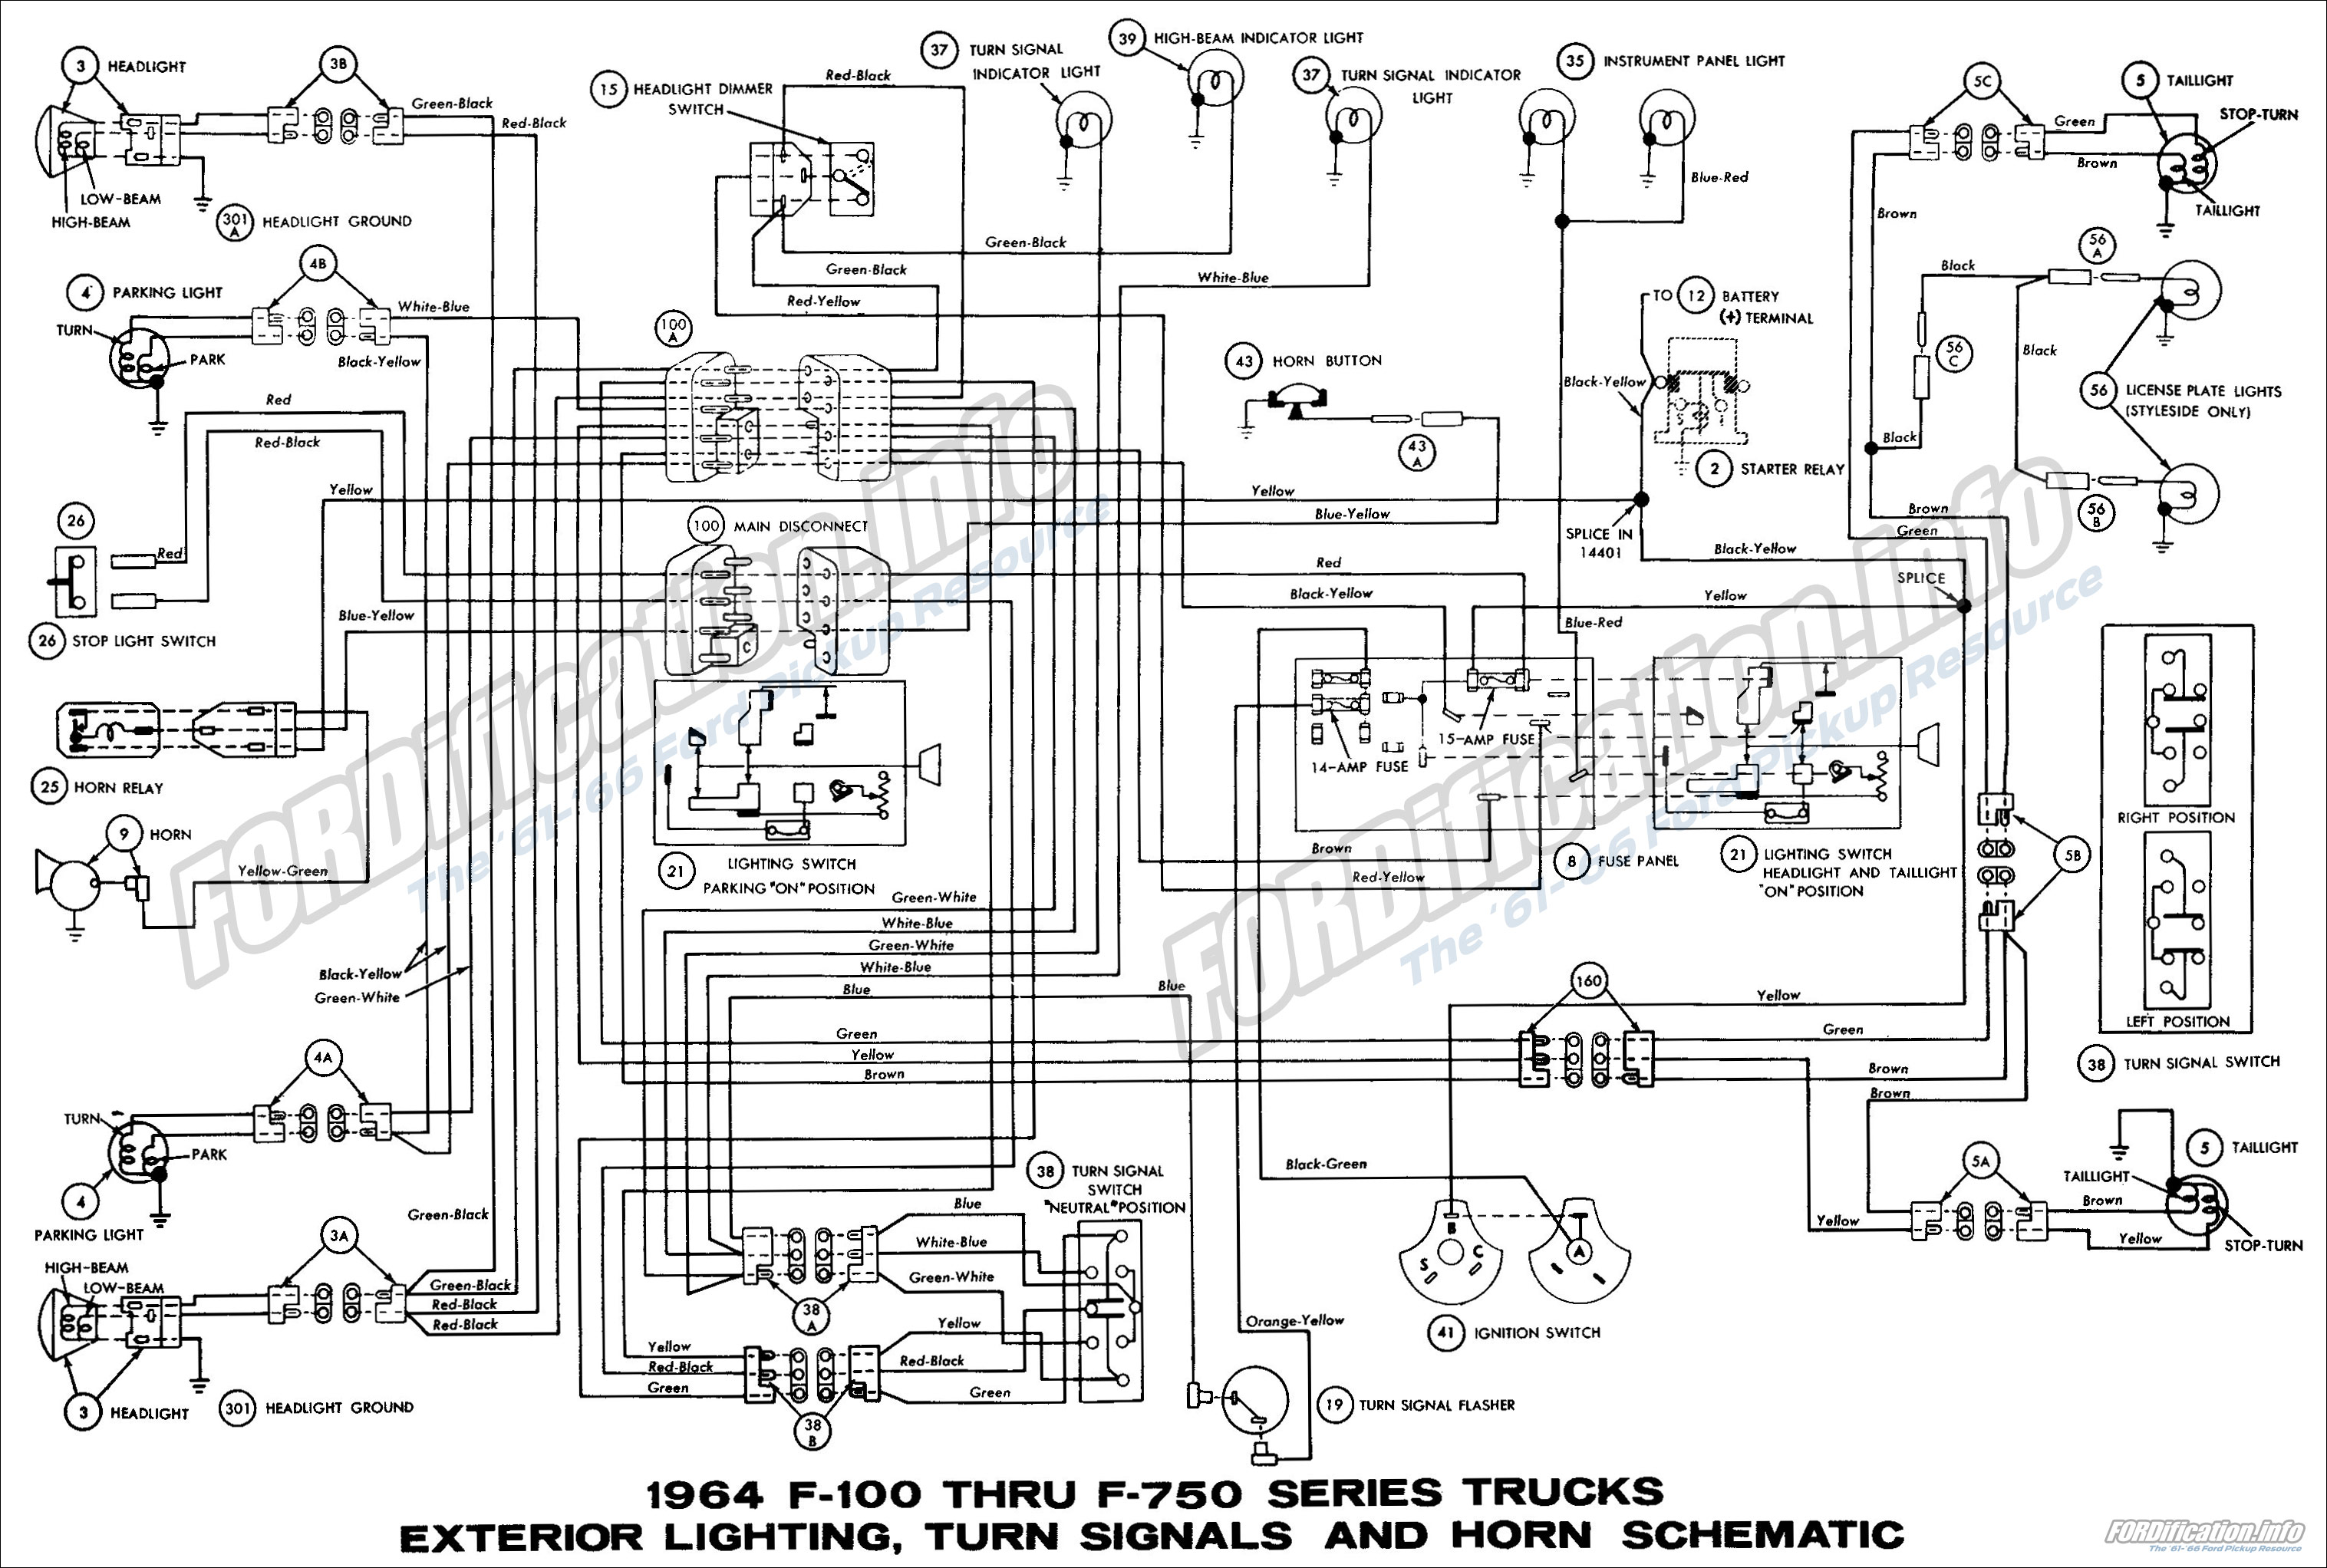 66 ford truck f250 alternator wiring diagram [ 3033 x 2044 Pixel ]